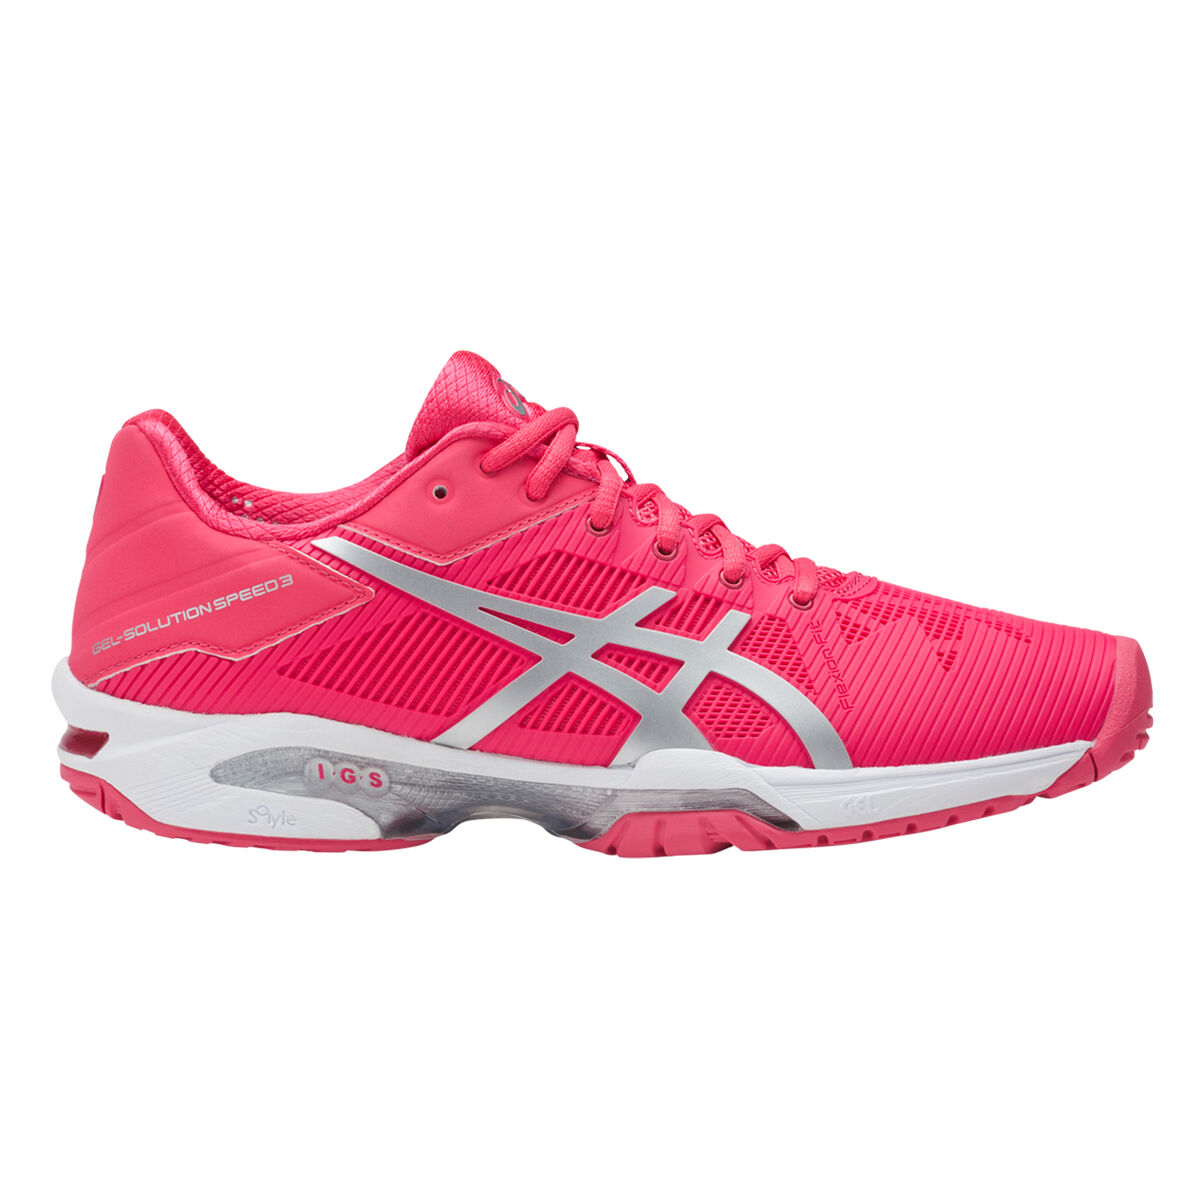 e99c0414 Asics GEL-Solution Speed 3 Women's Tennis Shoe - Pink/White